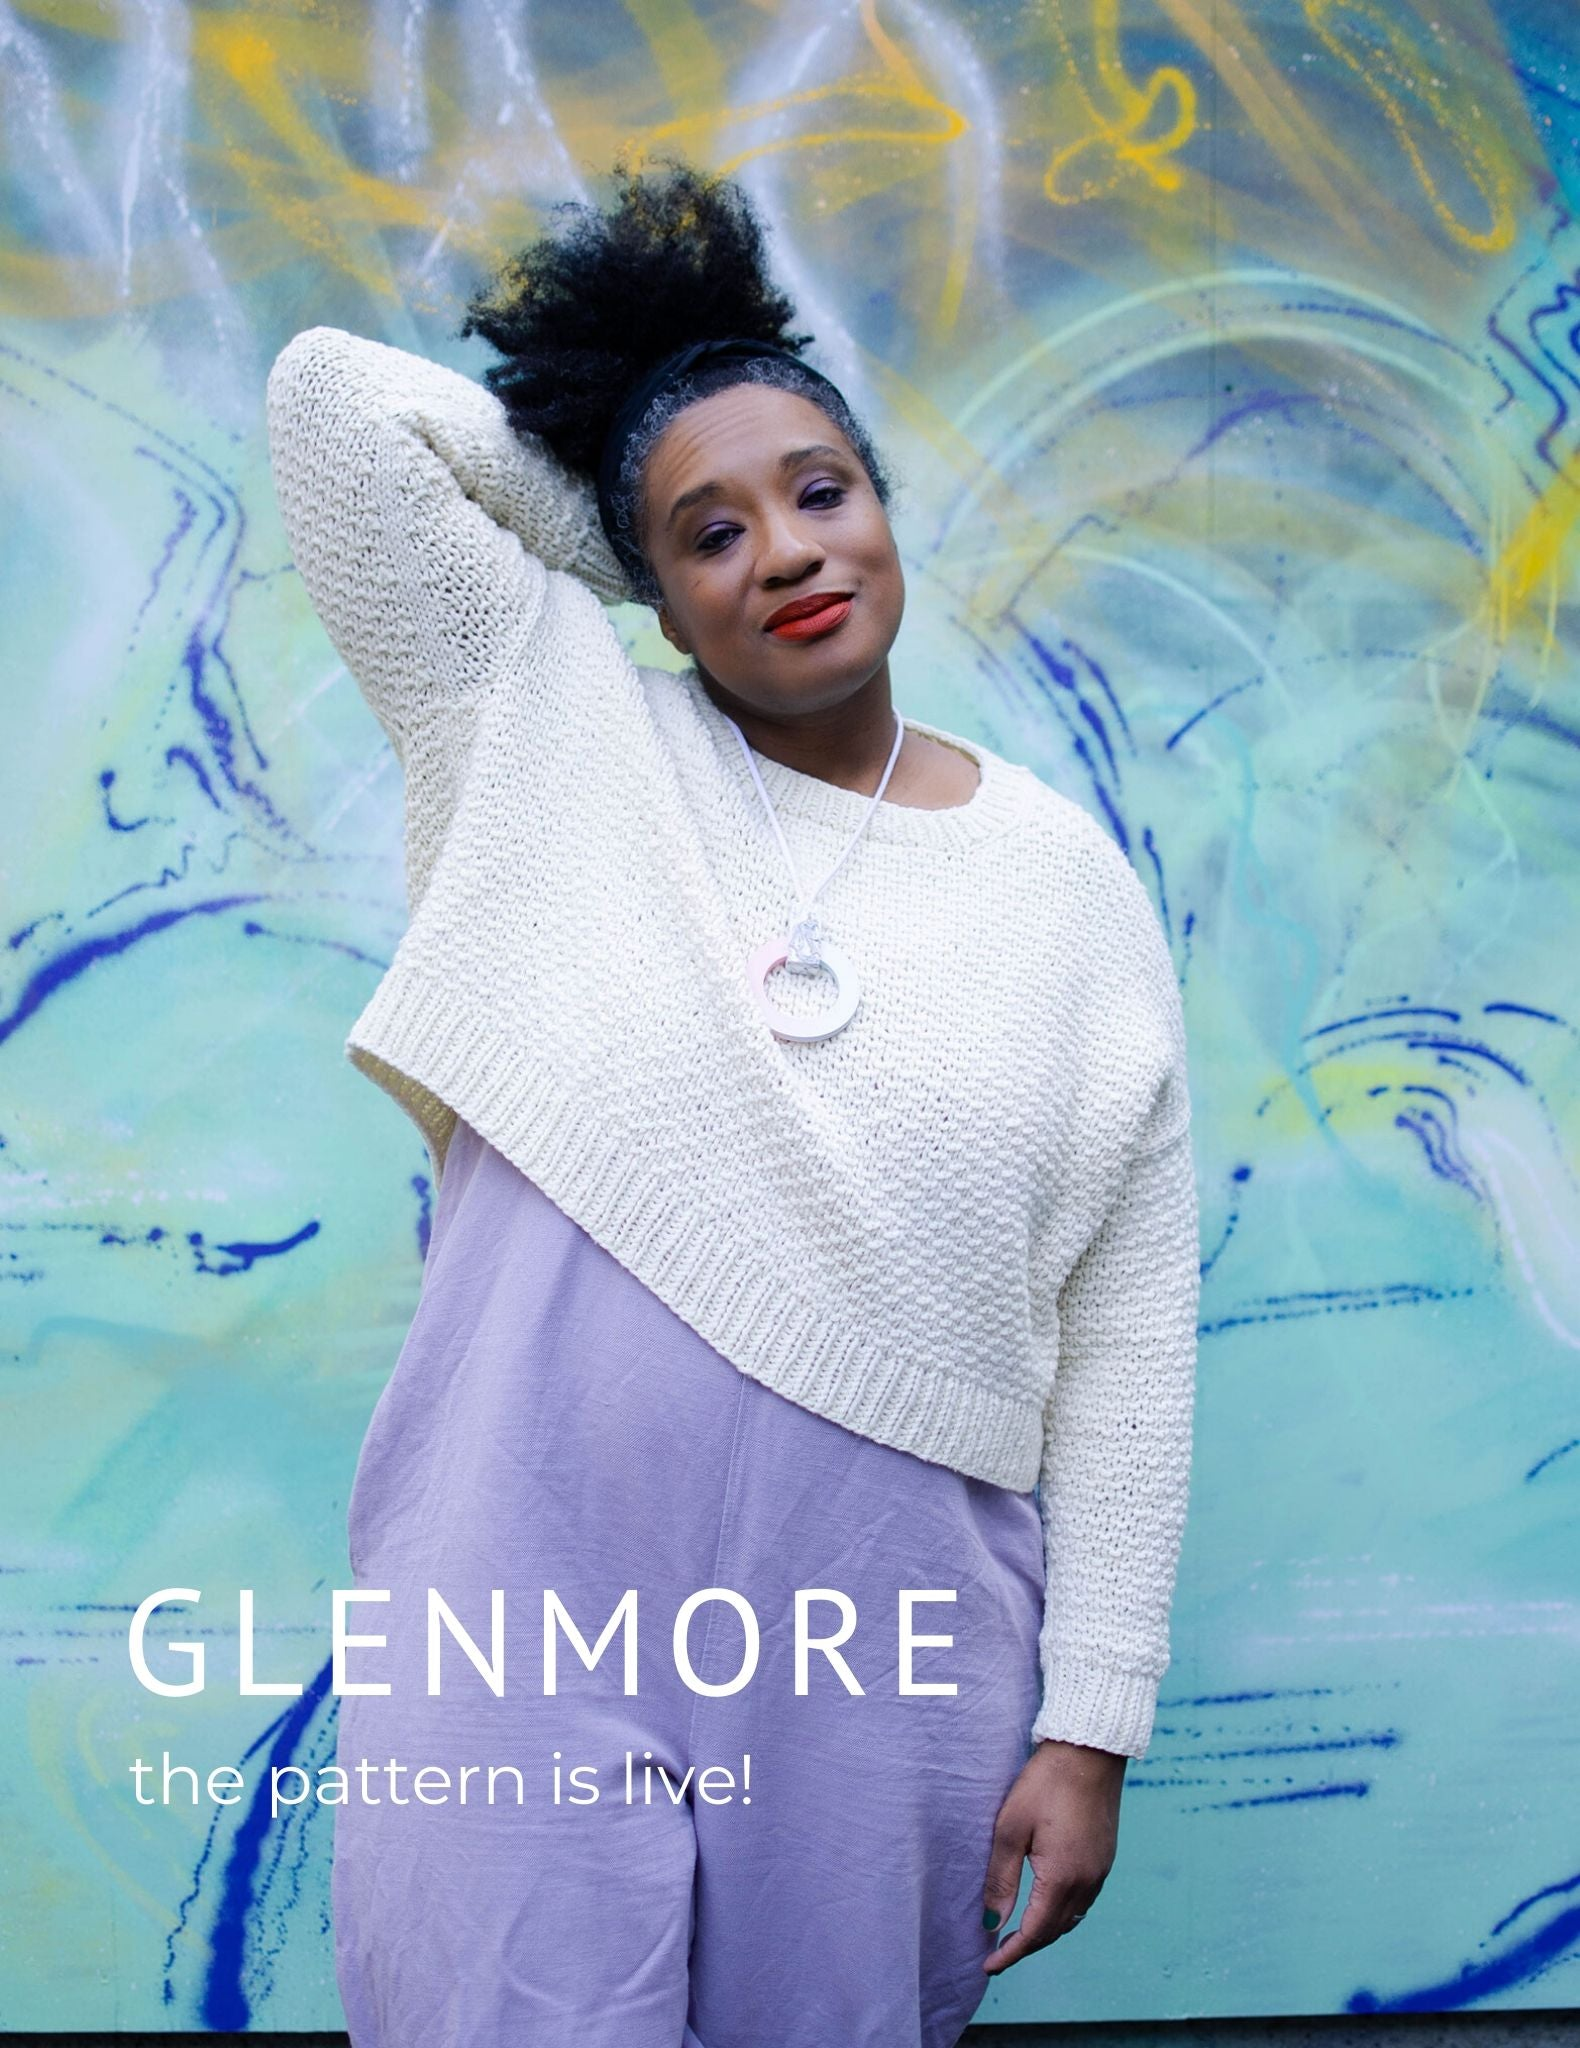 Glenmore is live!